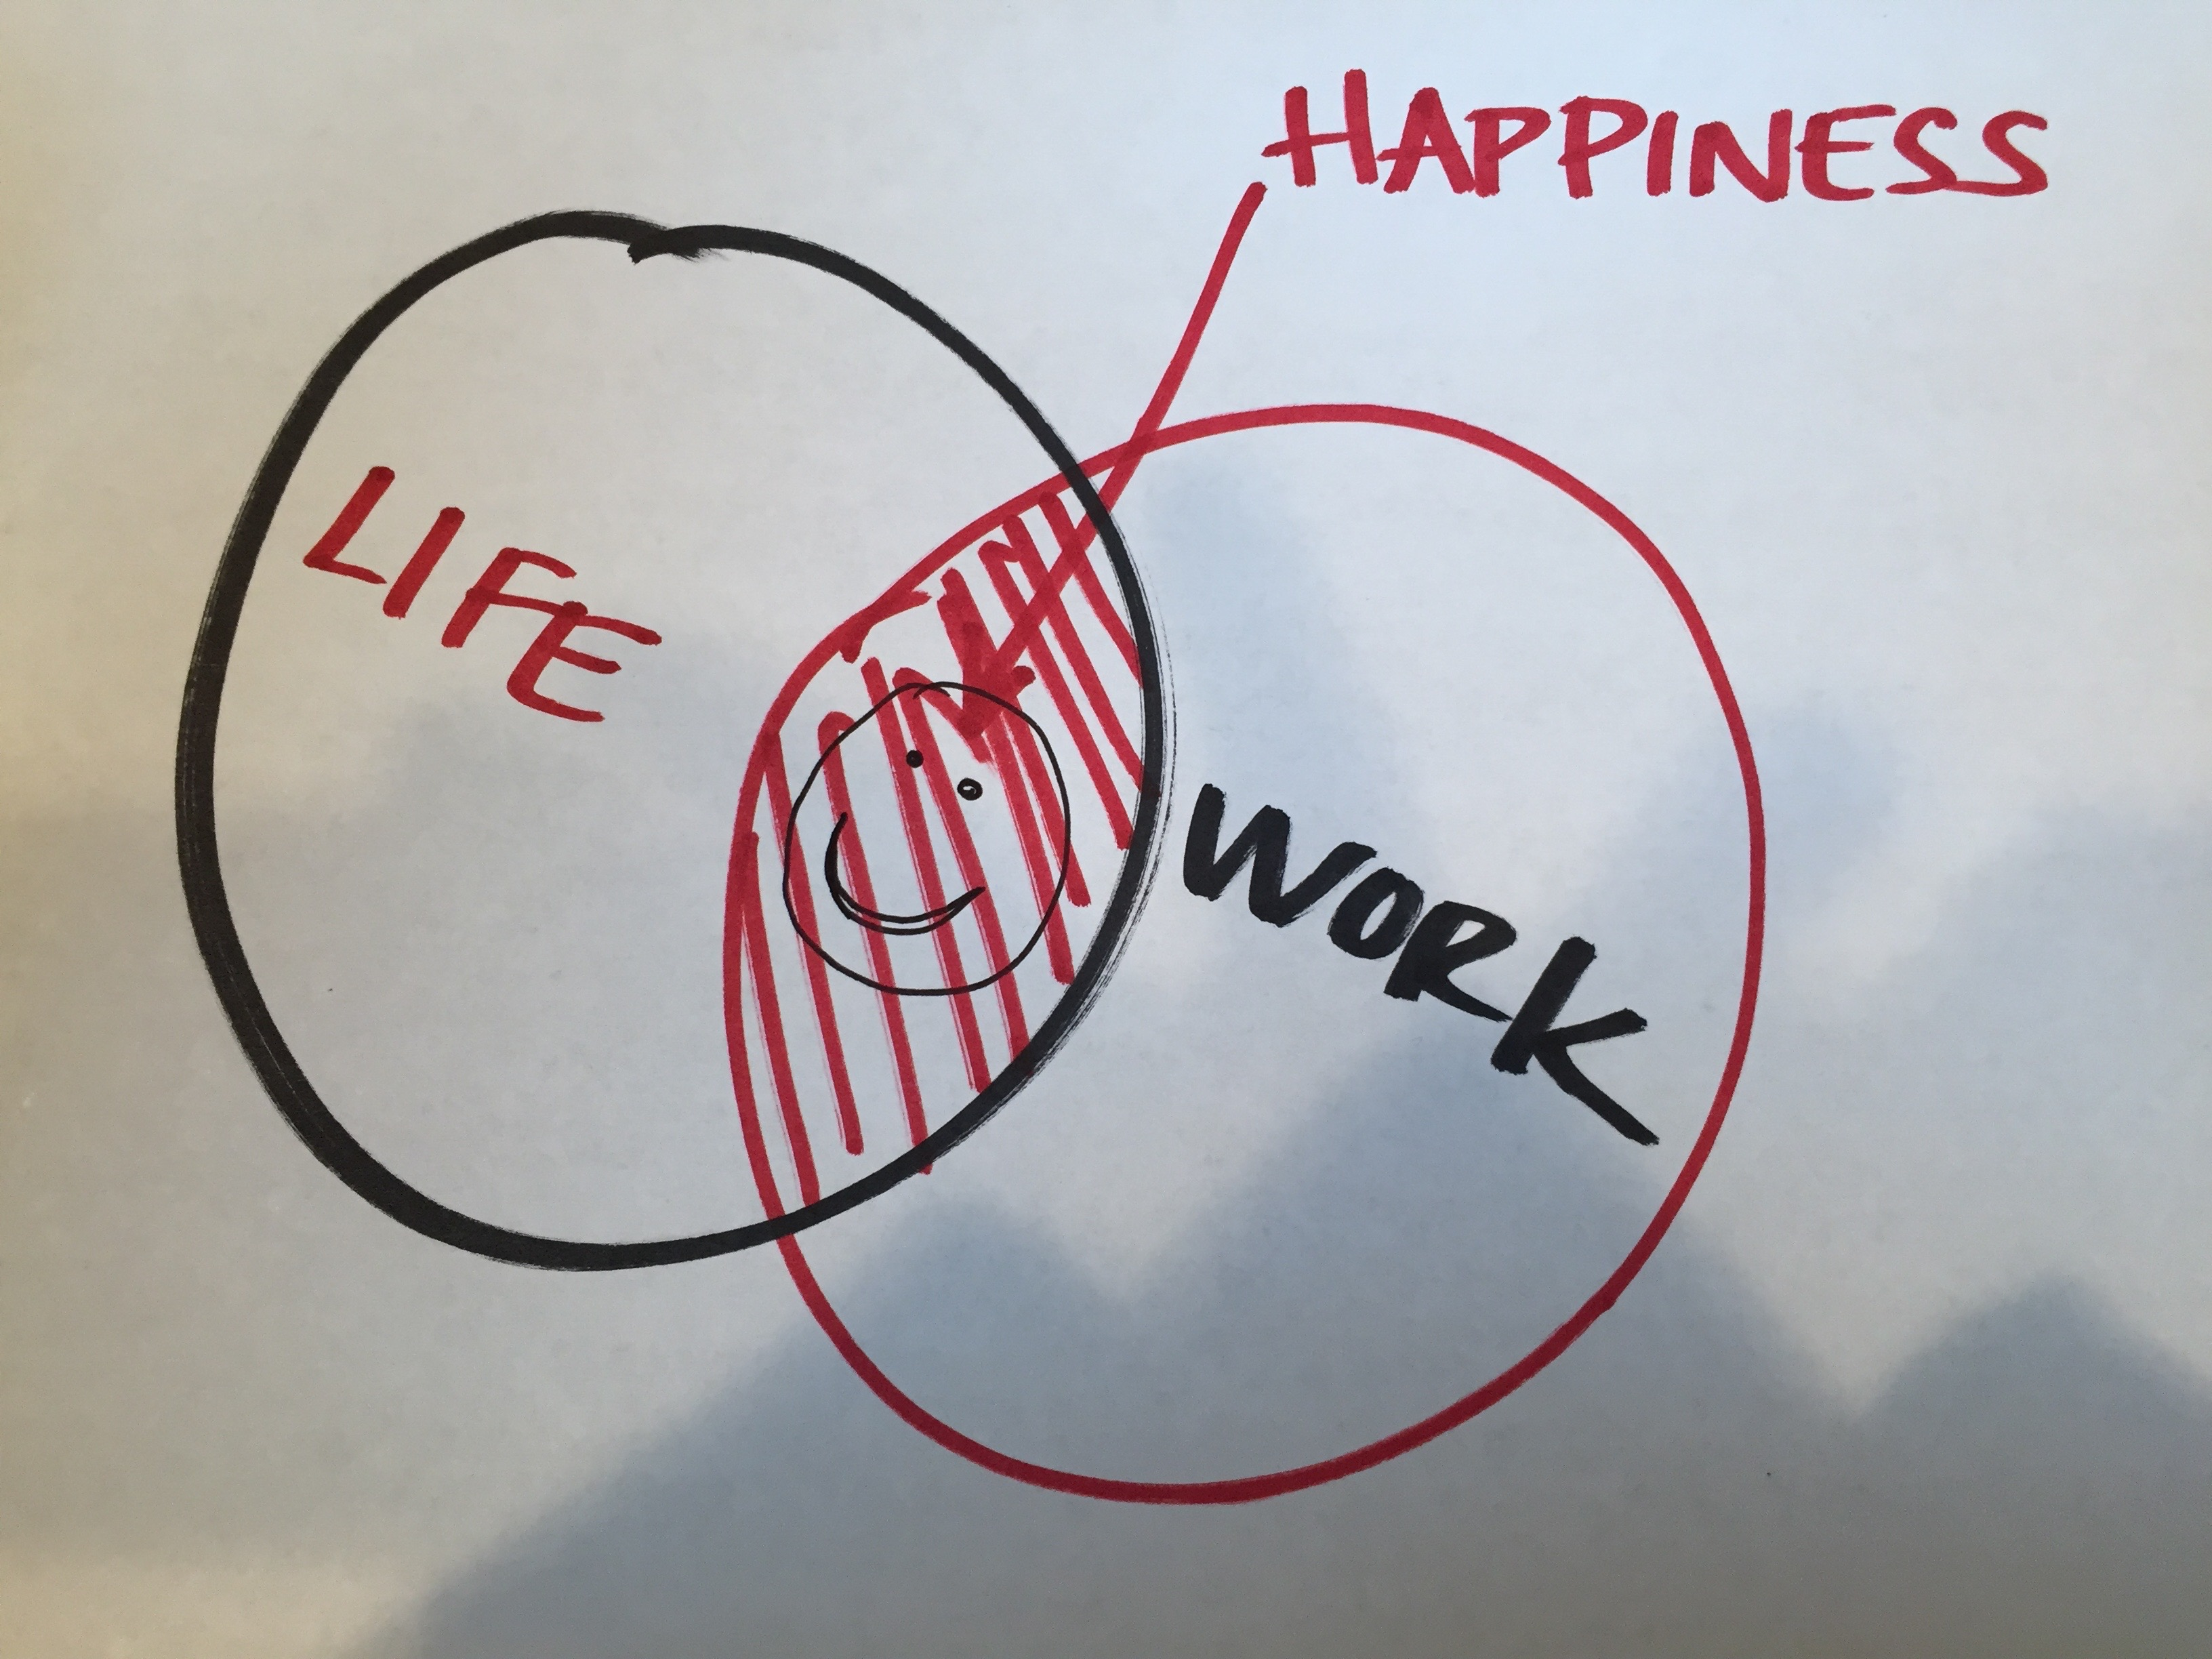 Work-Life Balance? Try Work-Life Integration